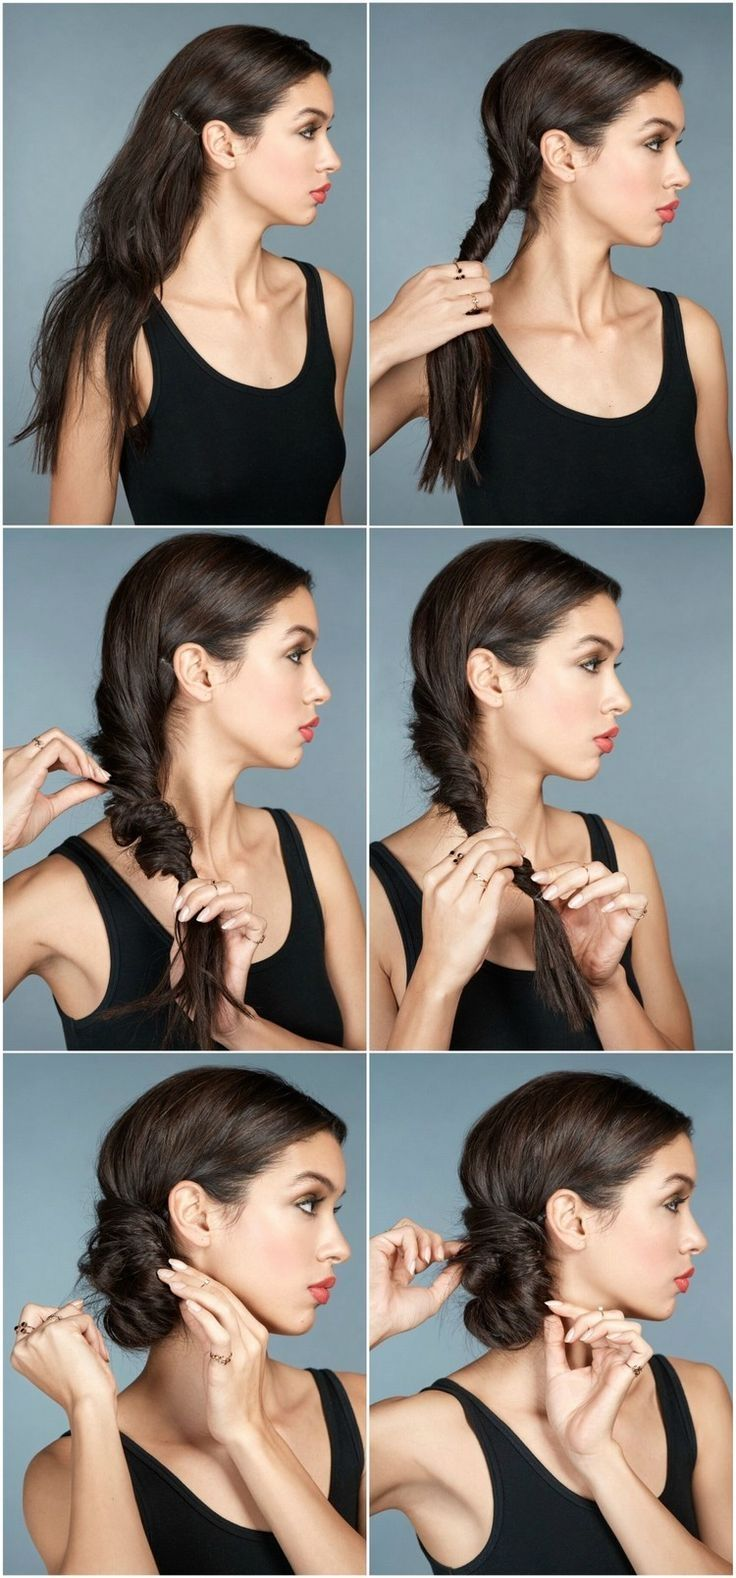 Festive Updos With Instructions 6 Styling Ideas Perfect For New Year S Eve Side Updo Instructions Imitate New Years Eve Side Updo Lazy Hairstyles Hair Styles